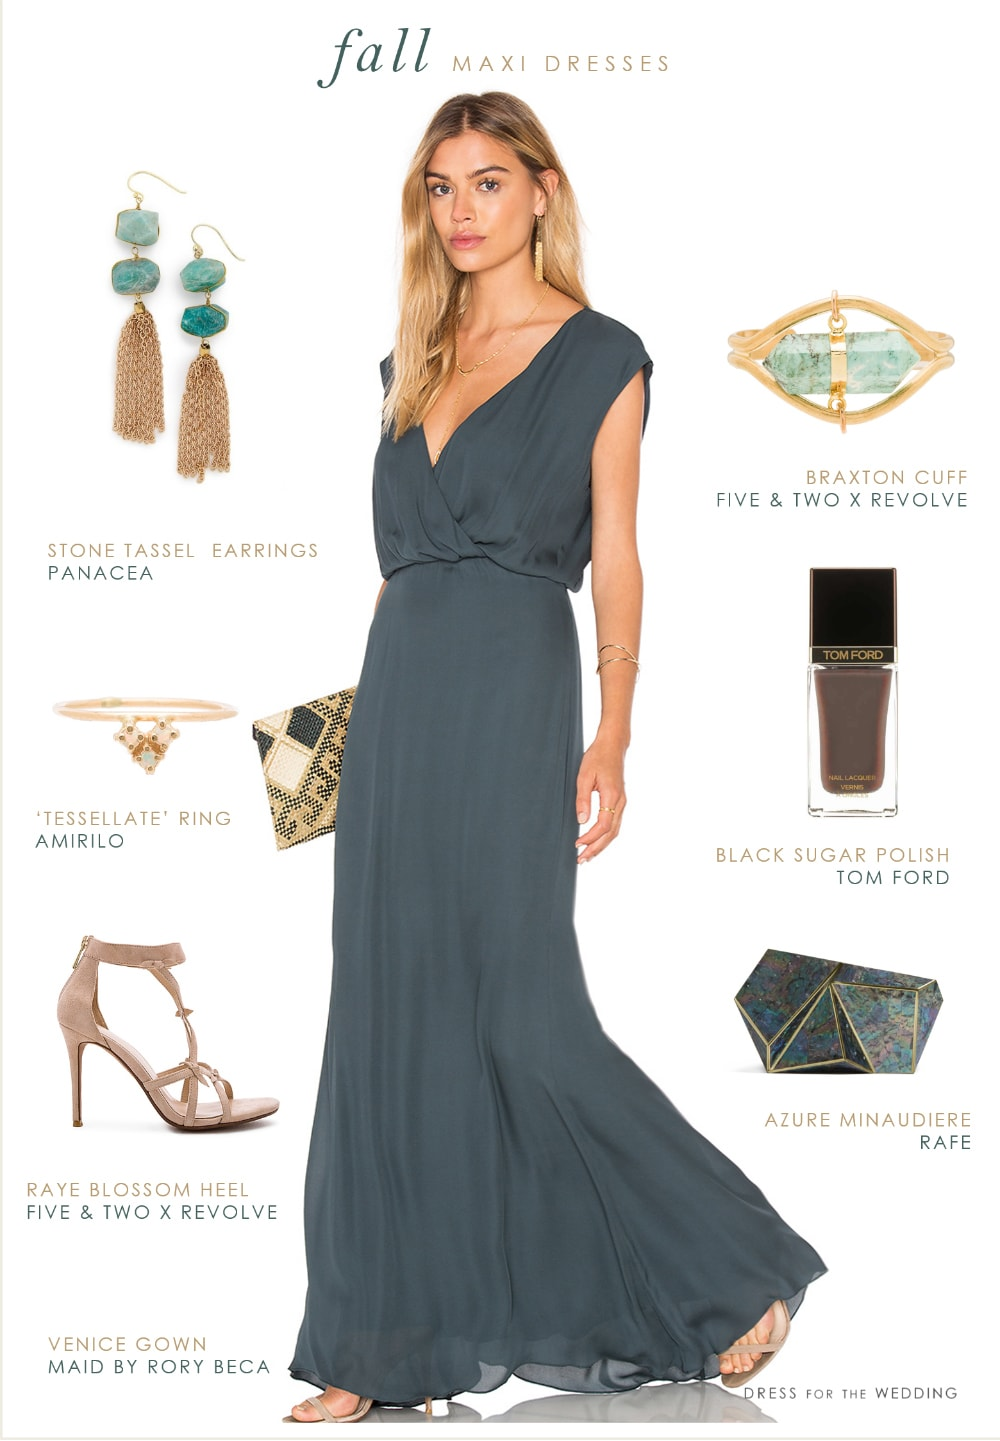 Maxi dresses for fall dress for the wedding for Dresses for a fall wedding